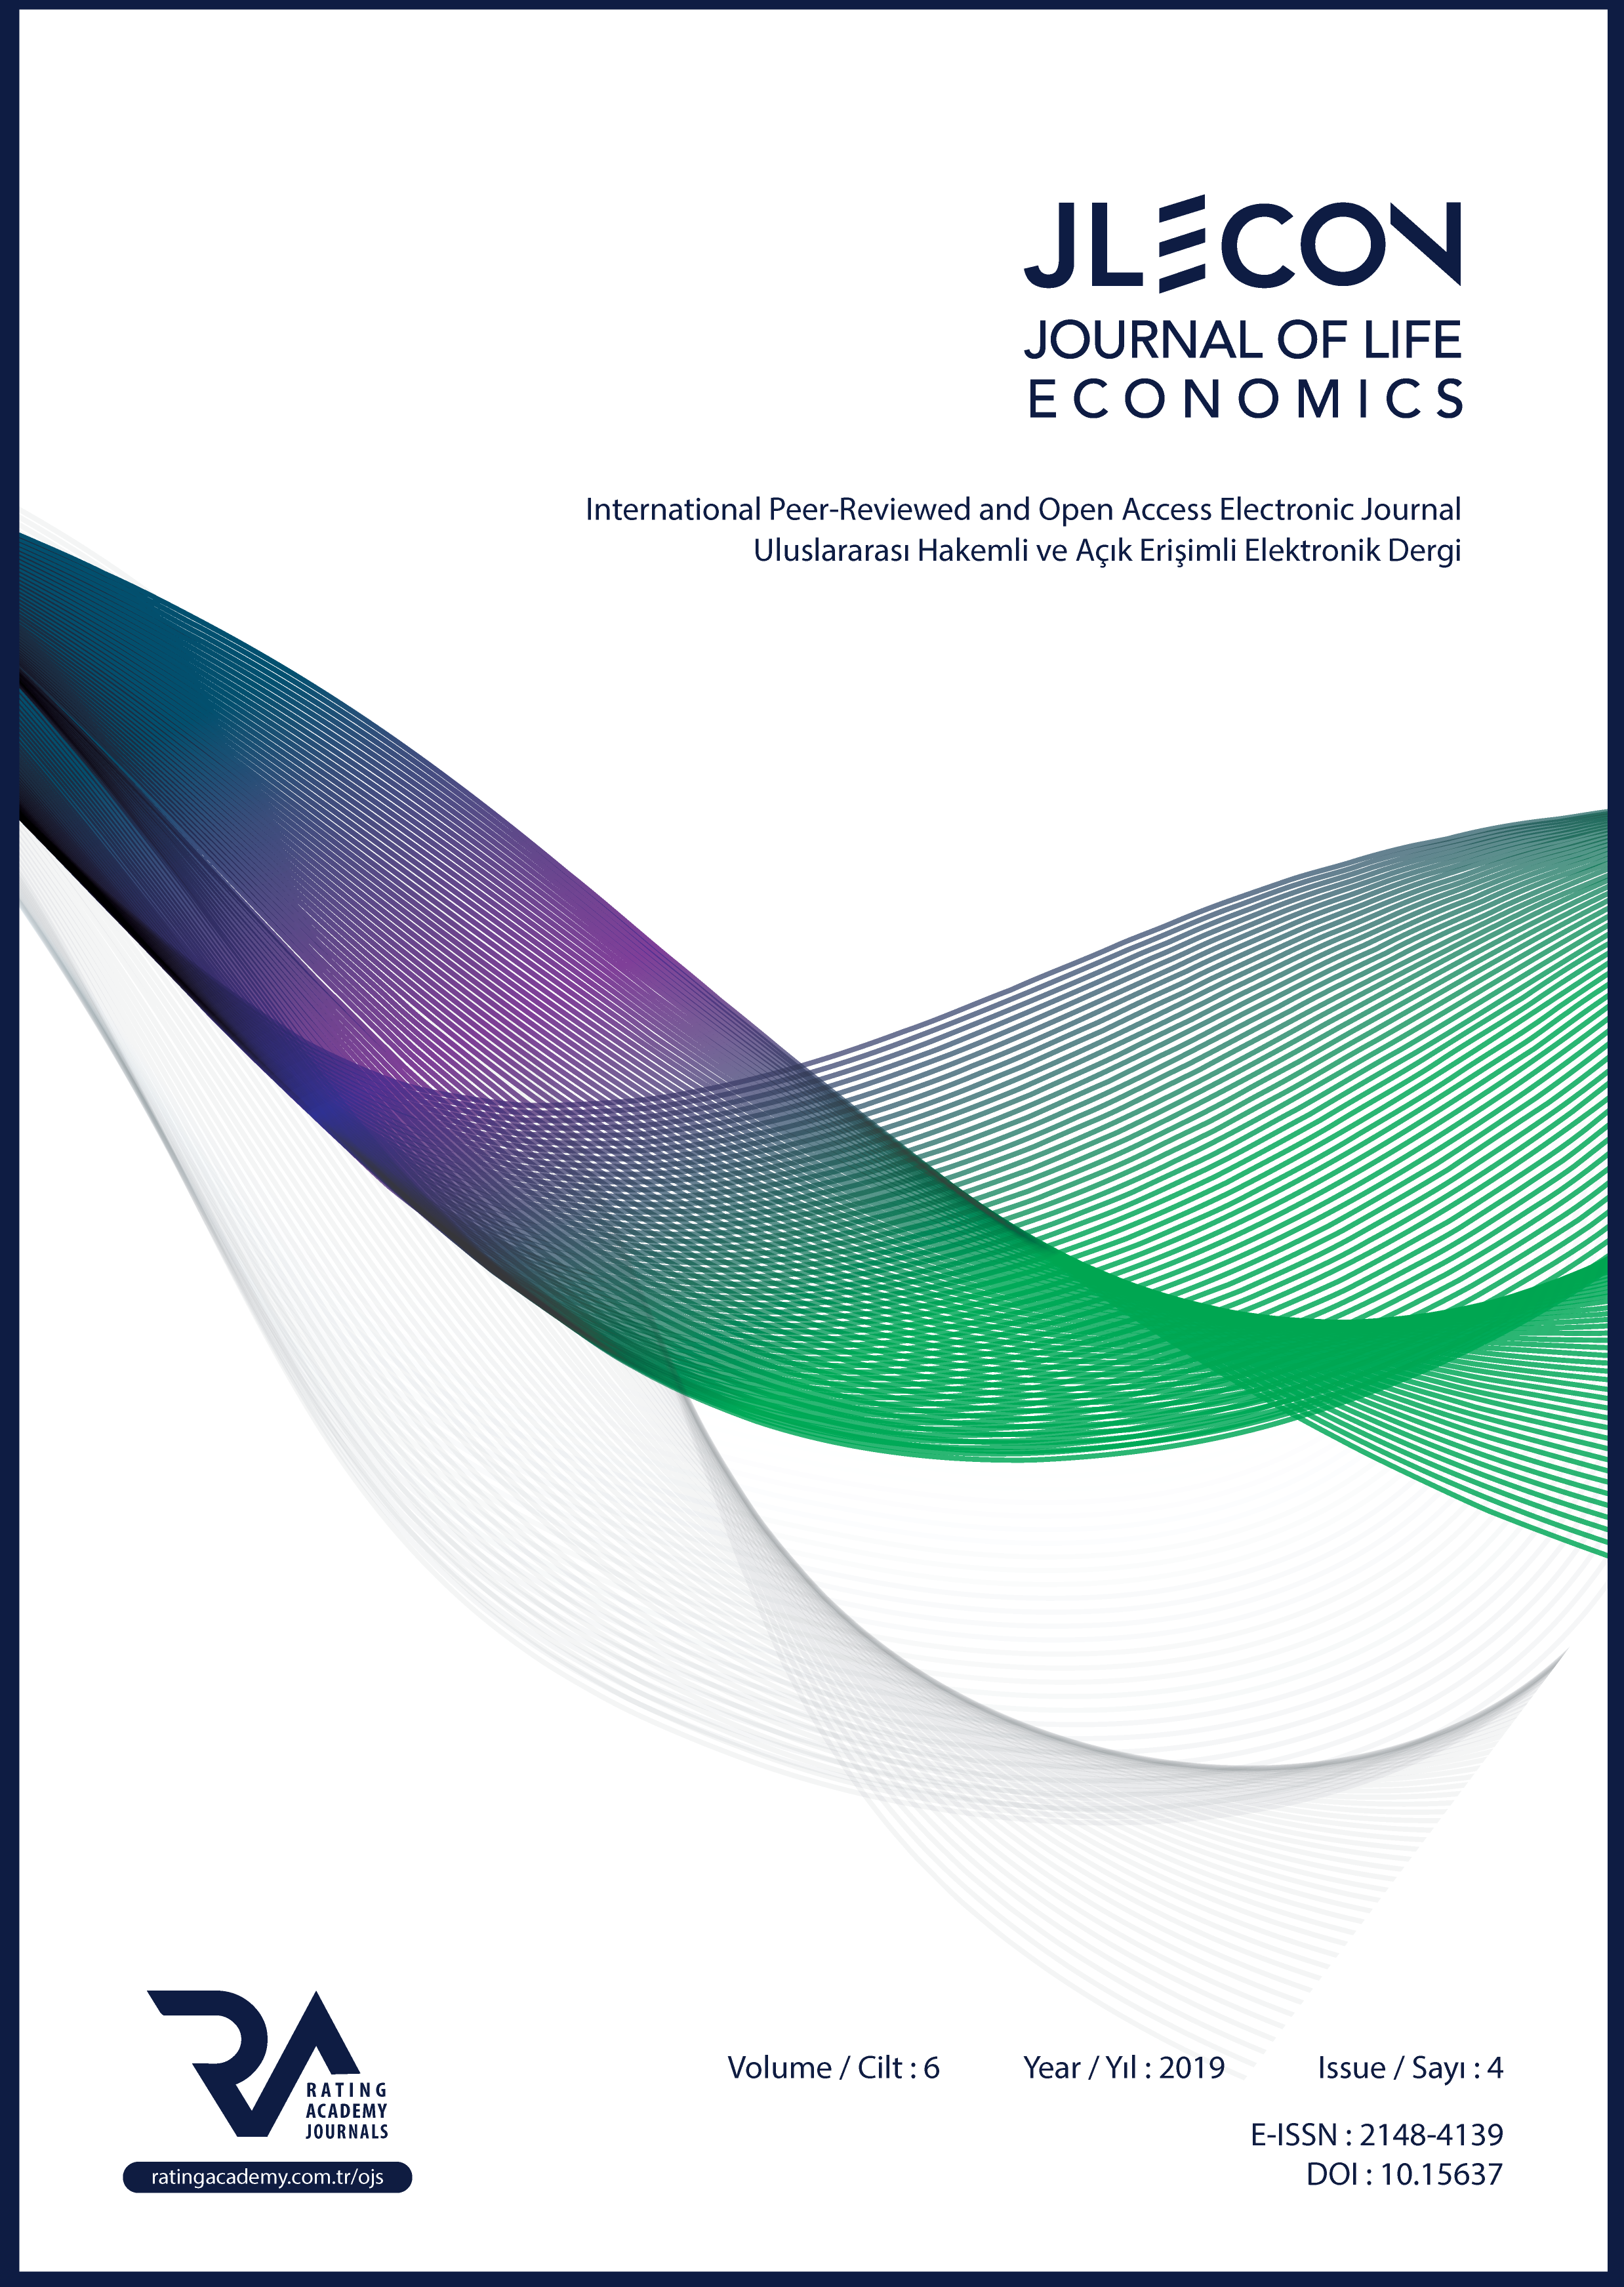 THE EXPORT DETERMINANT OF SOCIO-ECONOMIC RESILIENCE IN FOREIGN ECONOMIC ACTIVITY Cover Image